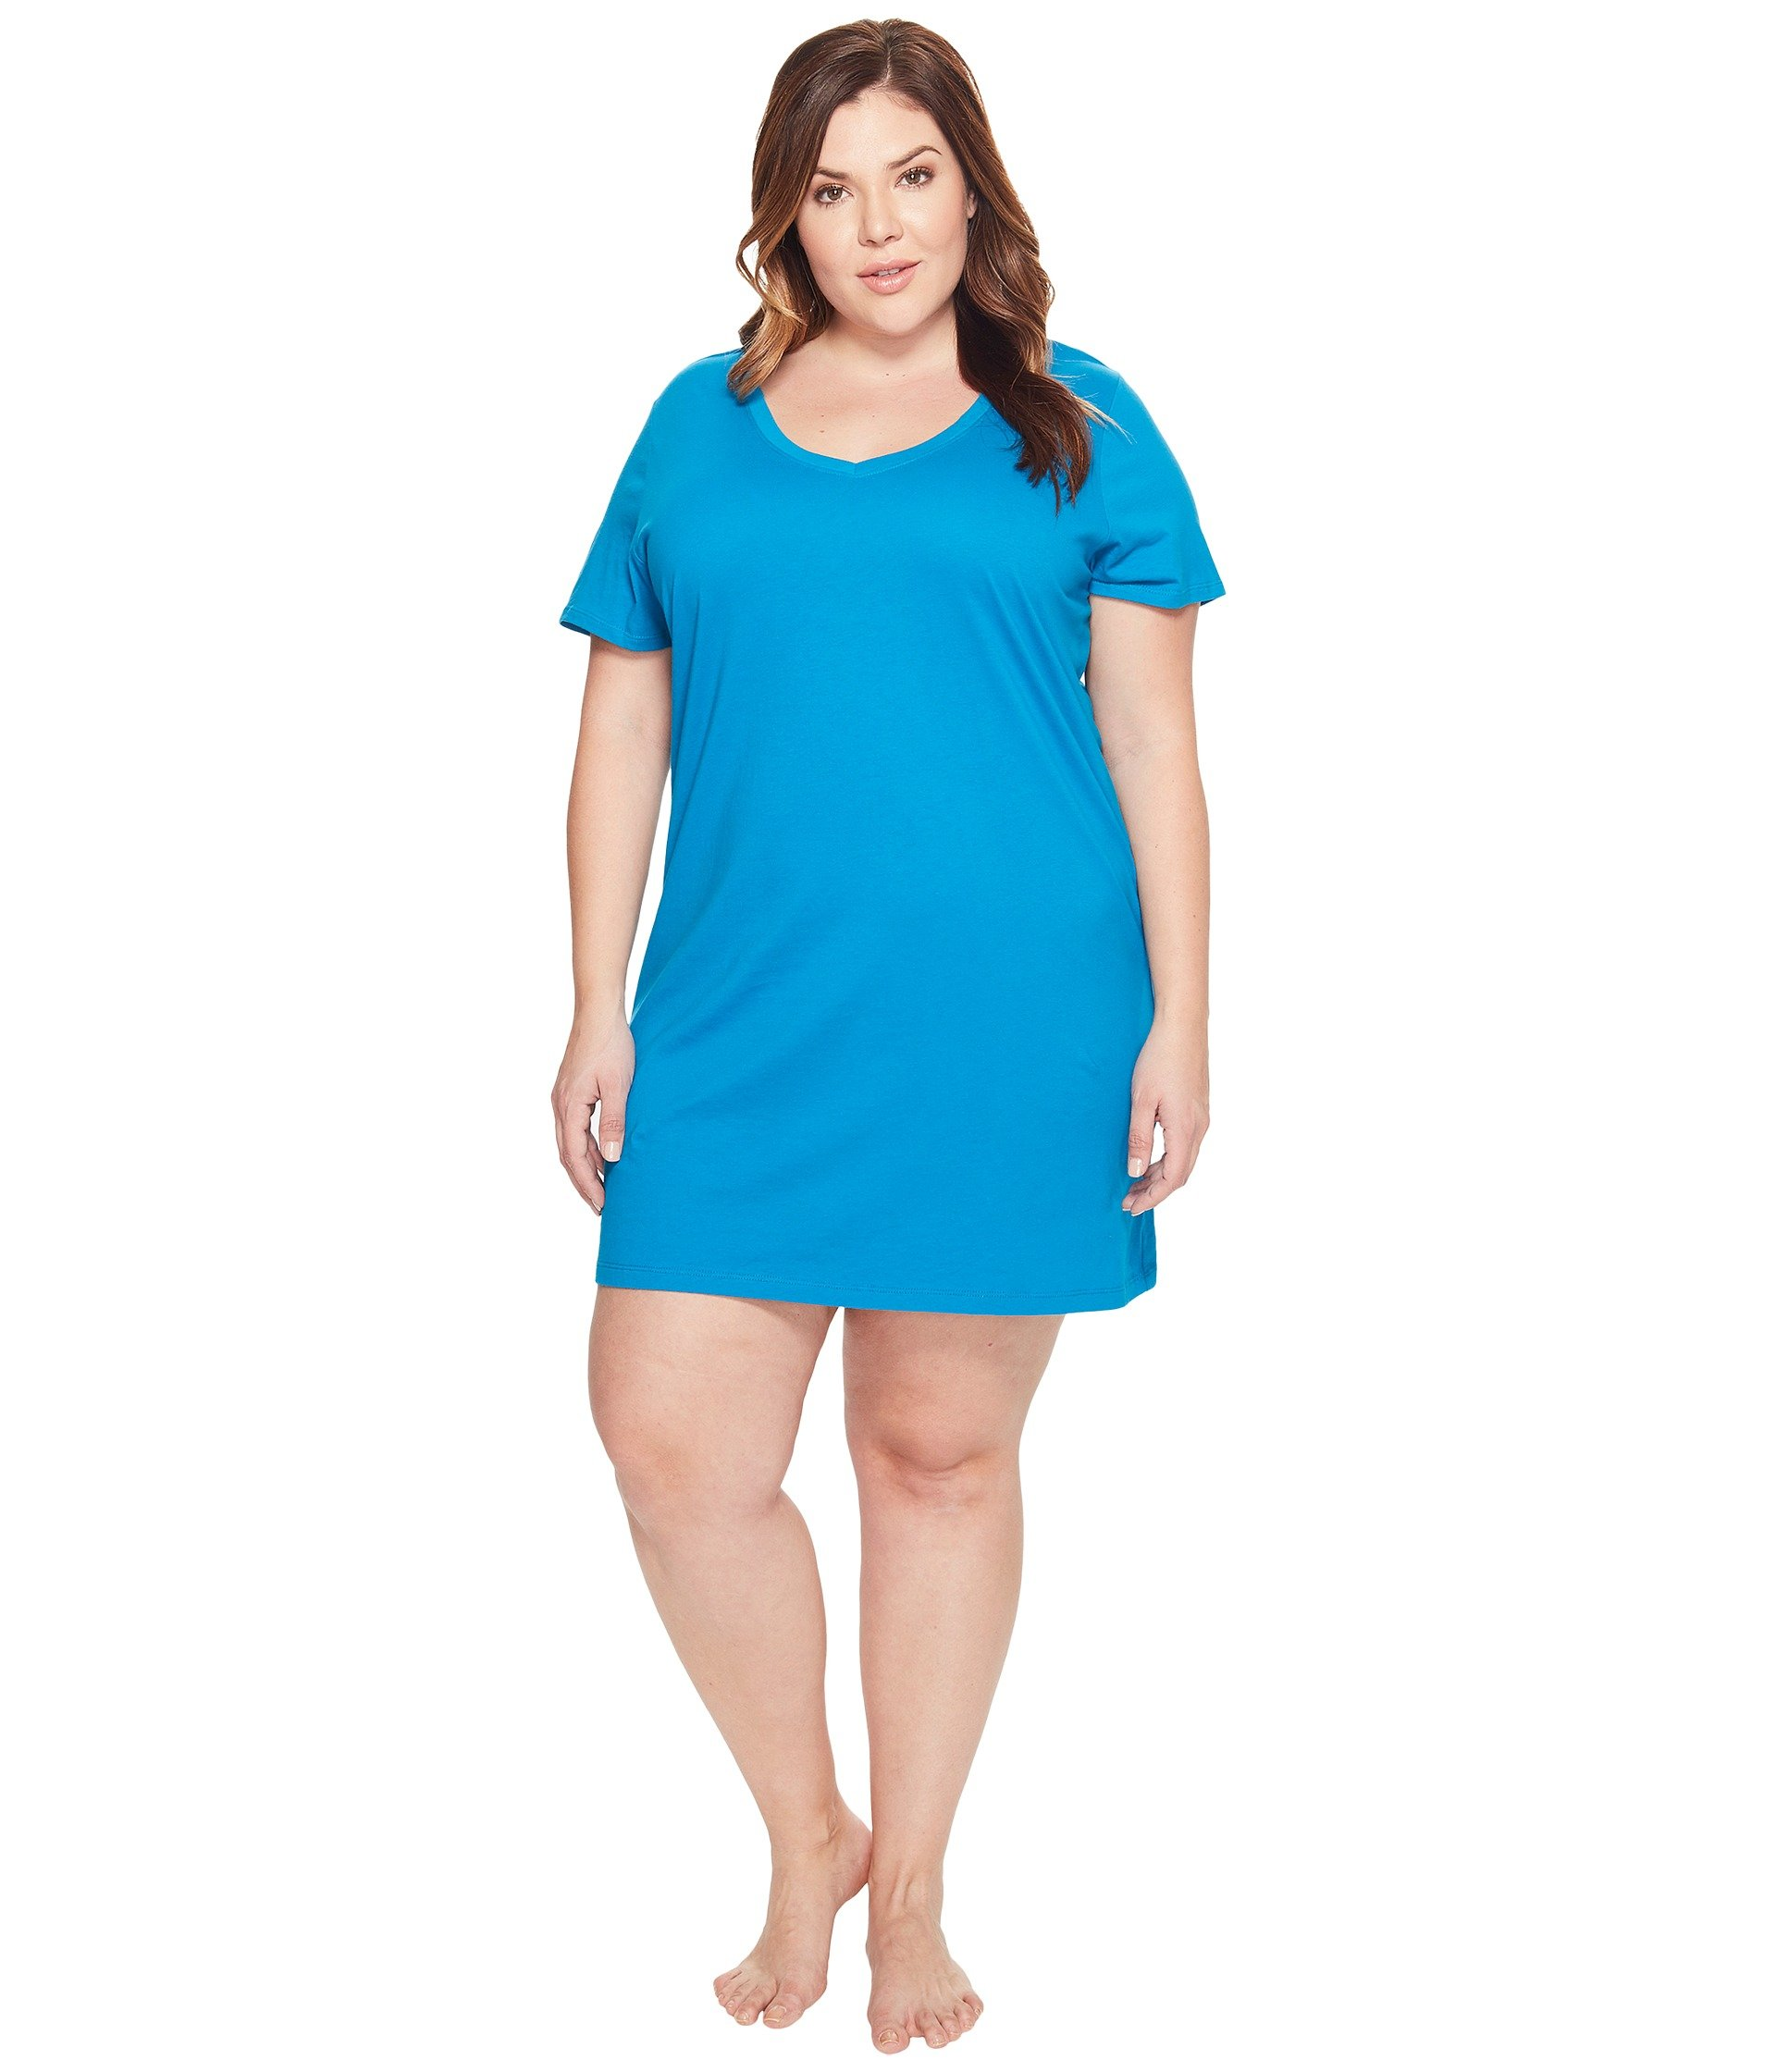 Babydoll Jockey Jockey Cotton Essentials Plus Size Sleepshirt  + Jockey en VeoyCompro.net